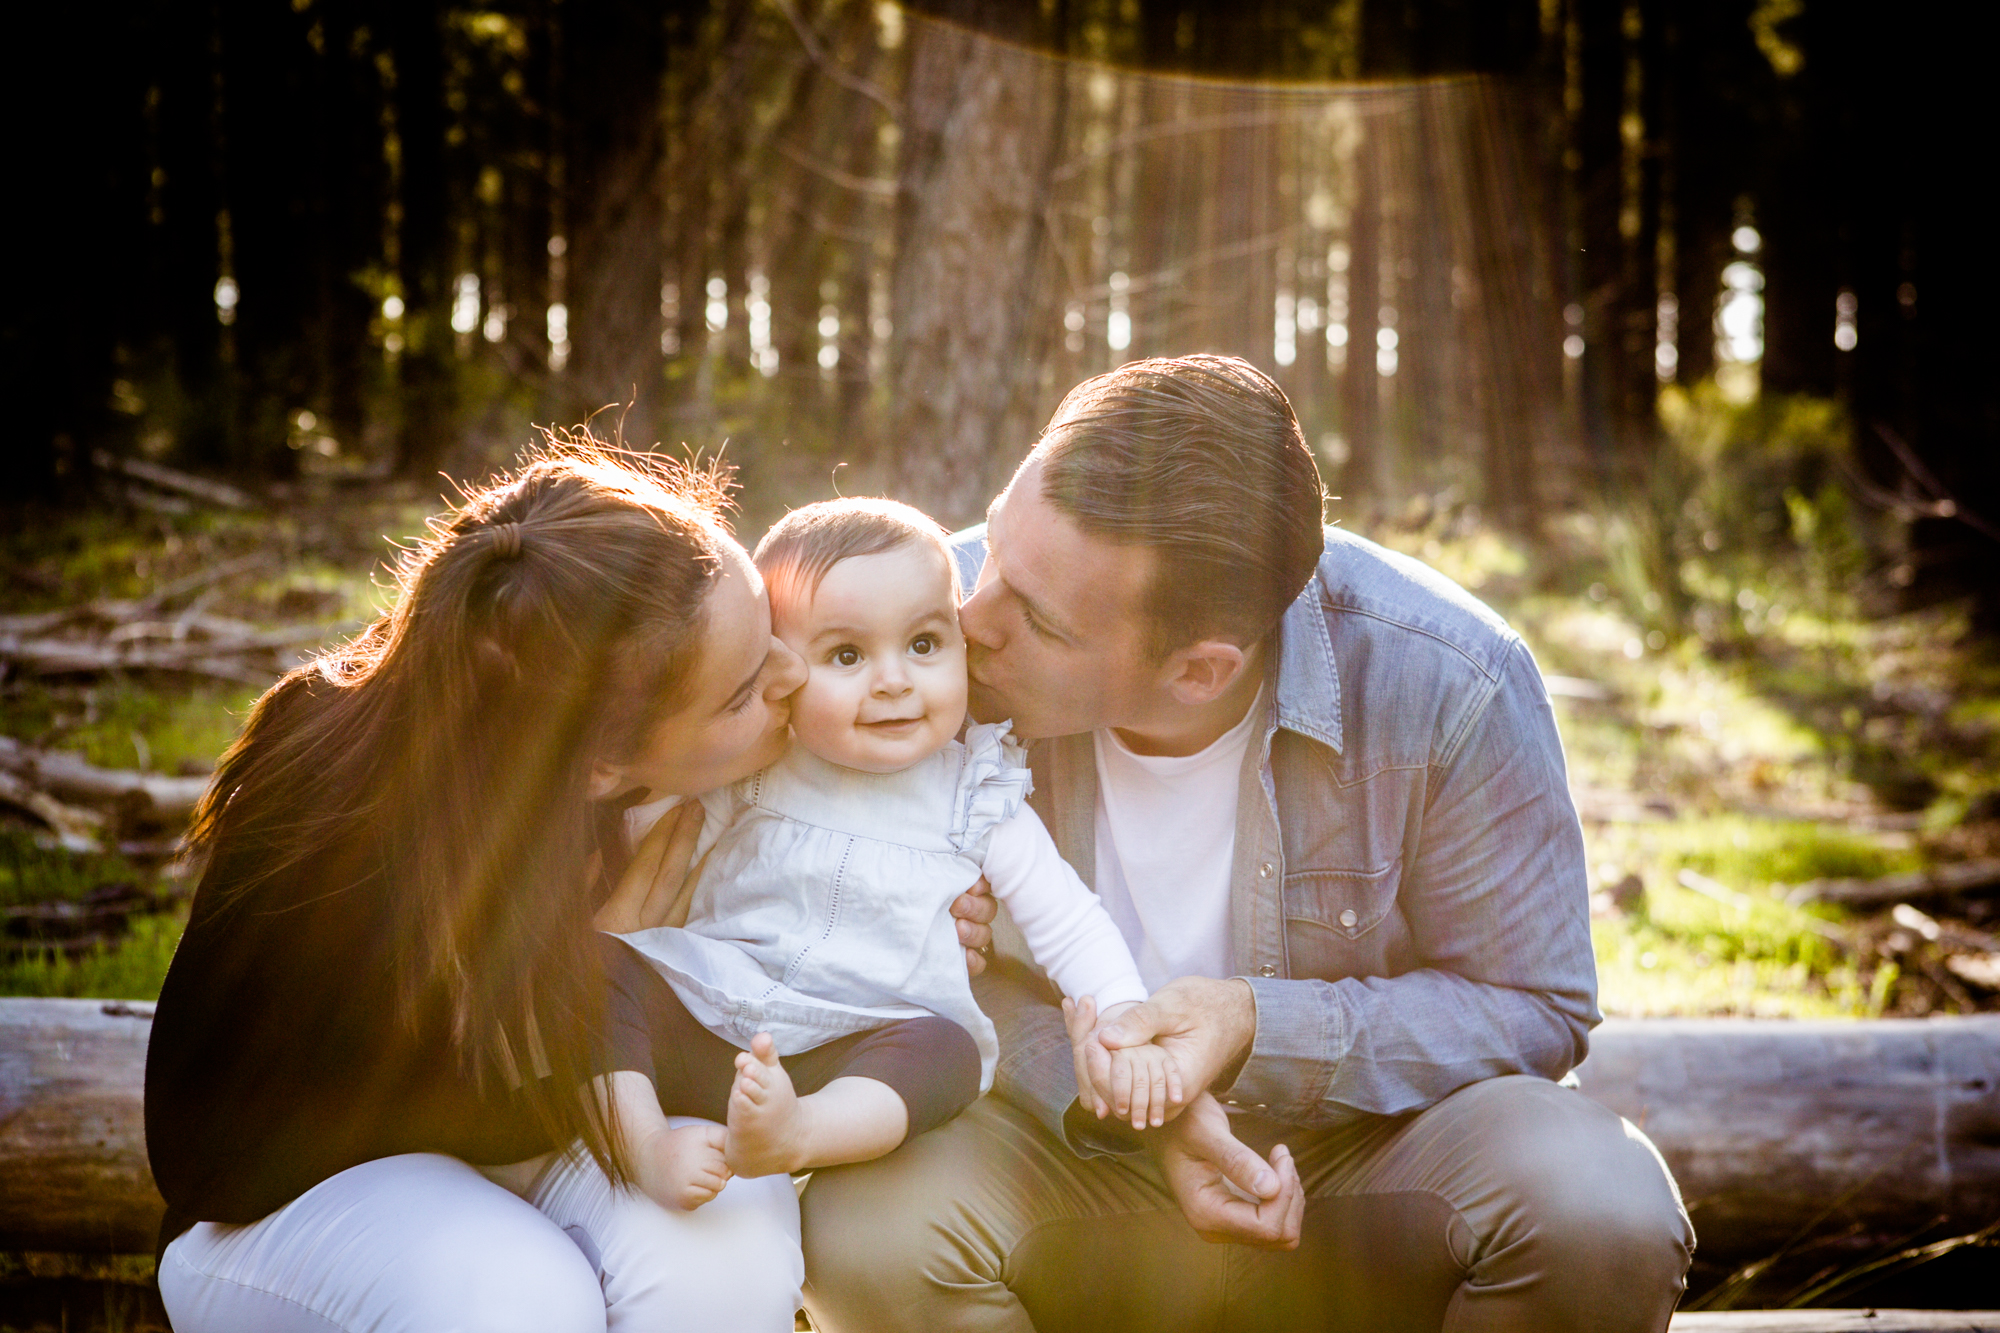 maisie_familyphotos_kuitpo_forest_adelaide_wedding_portrait_lifestyle_photographer_natural_forest_southaustralia_photography-26